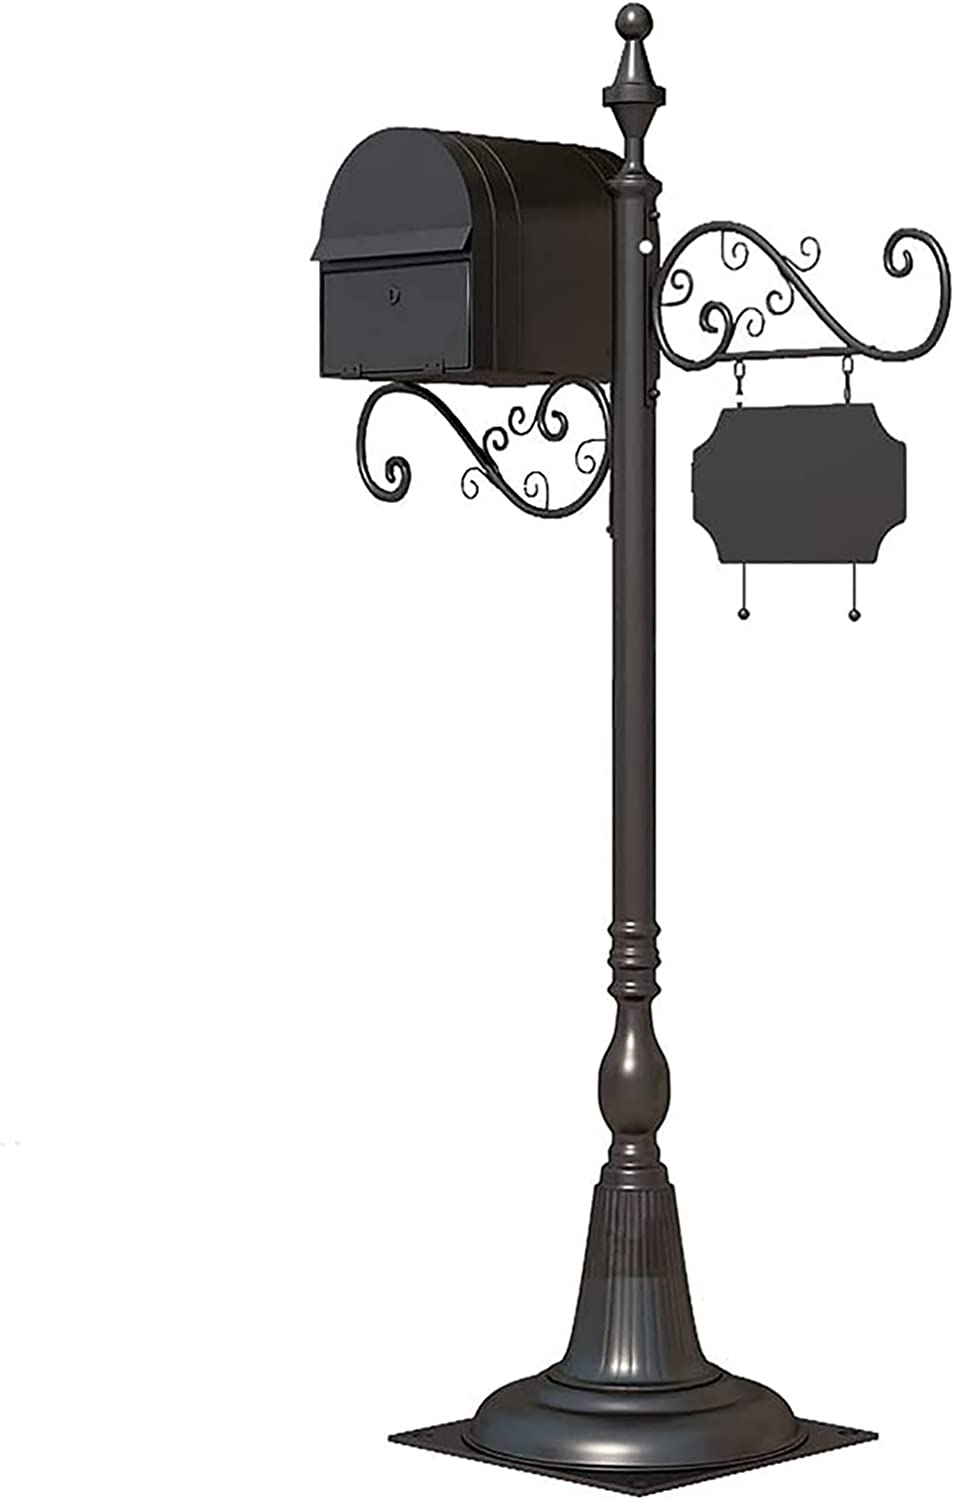 40% OFF Cheap Sale HYDT Metal Floor Mailbox Ranking TOP3 Black Post-Mount Lock with Letterboxes